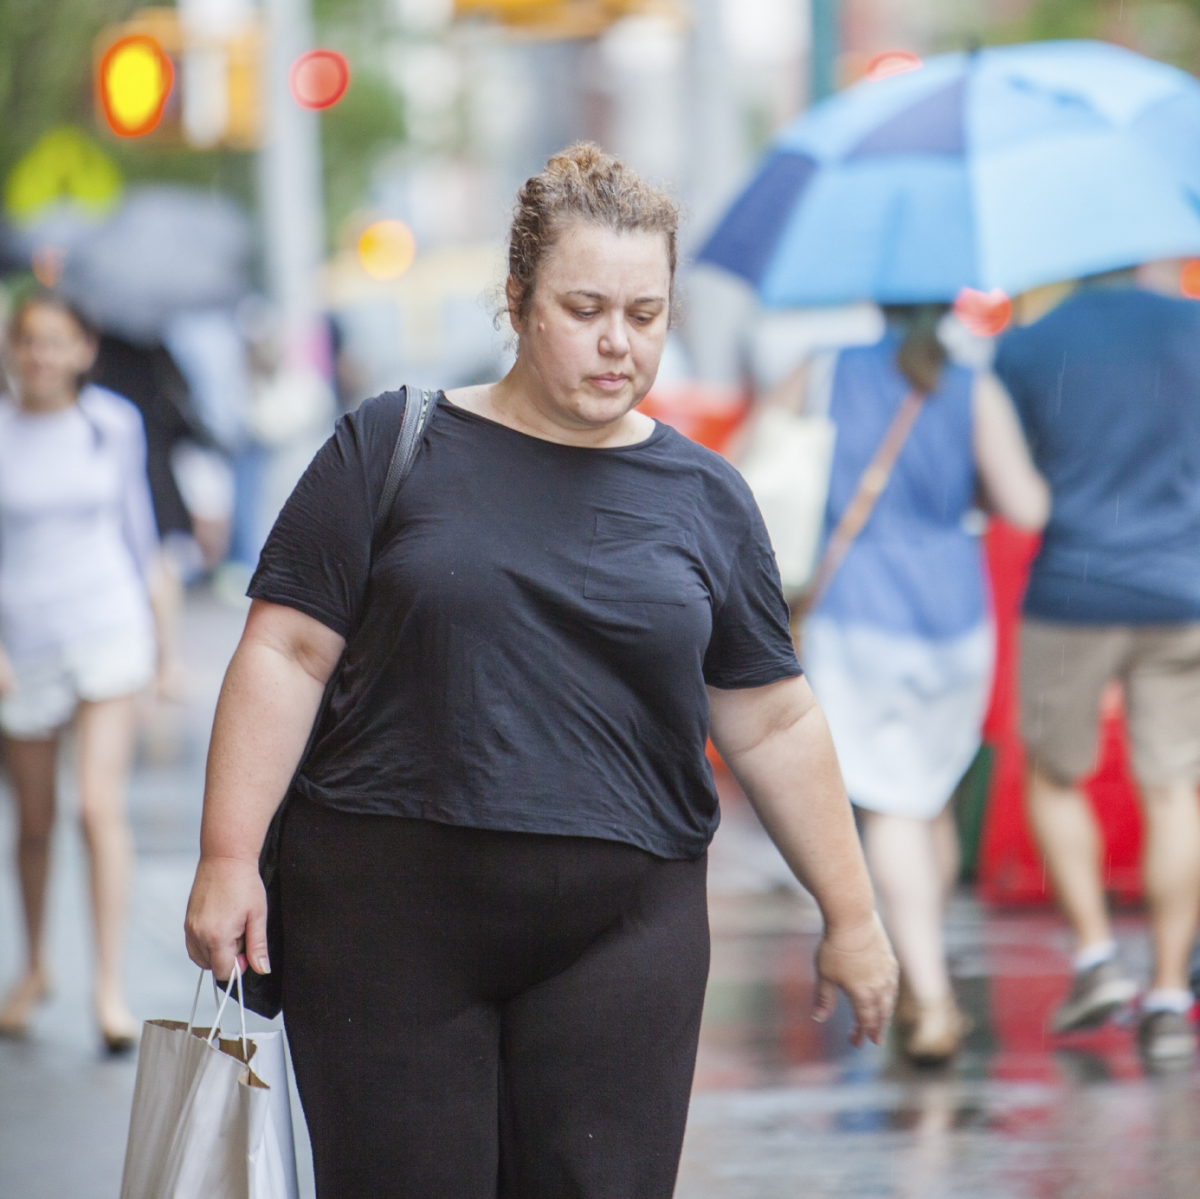 Air Pollution Increases Obesity Risk Urgent Action -5276